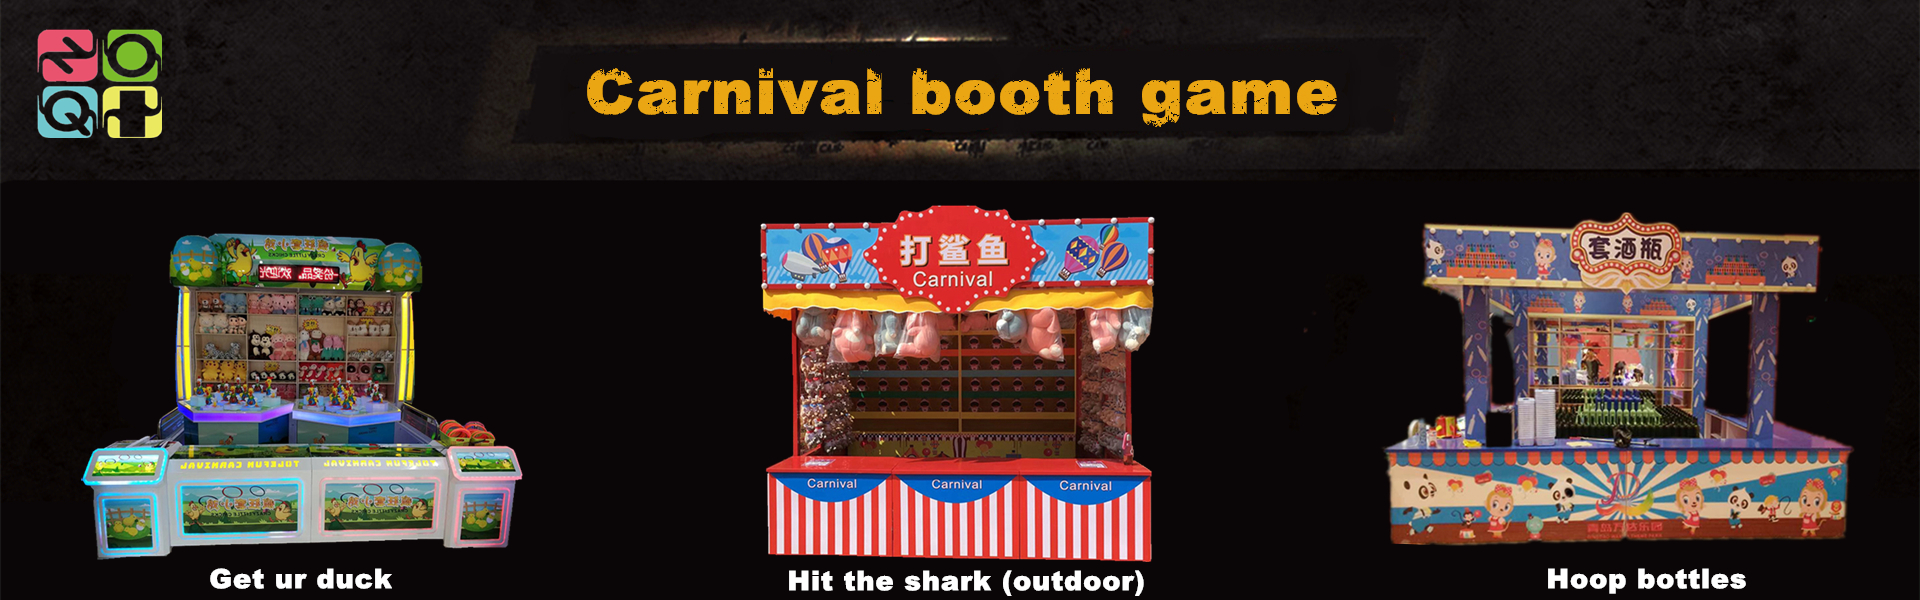 carnival booth game